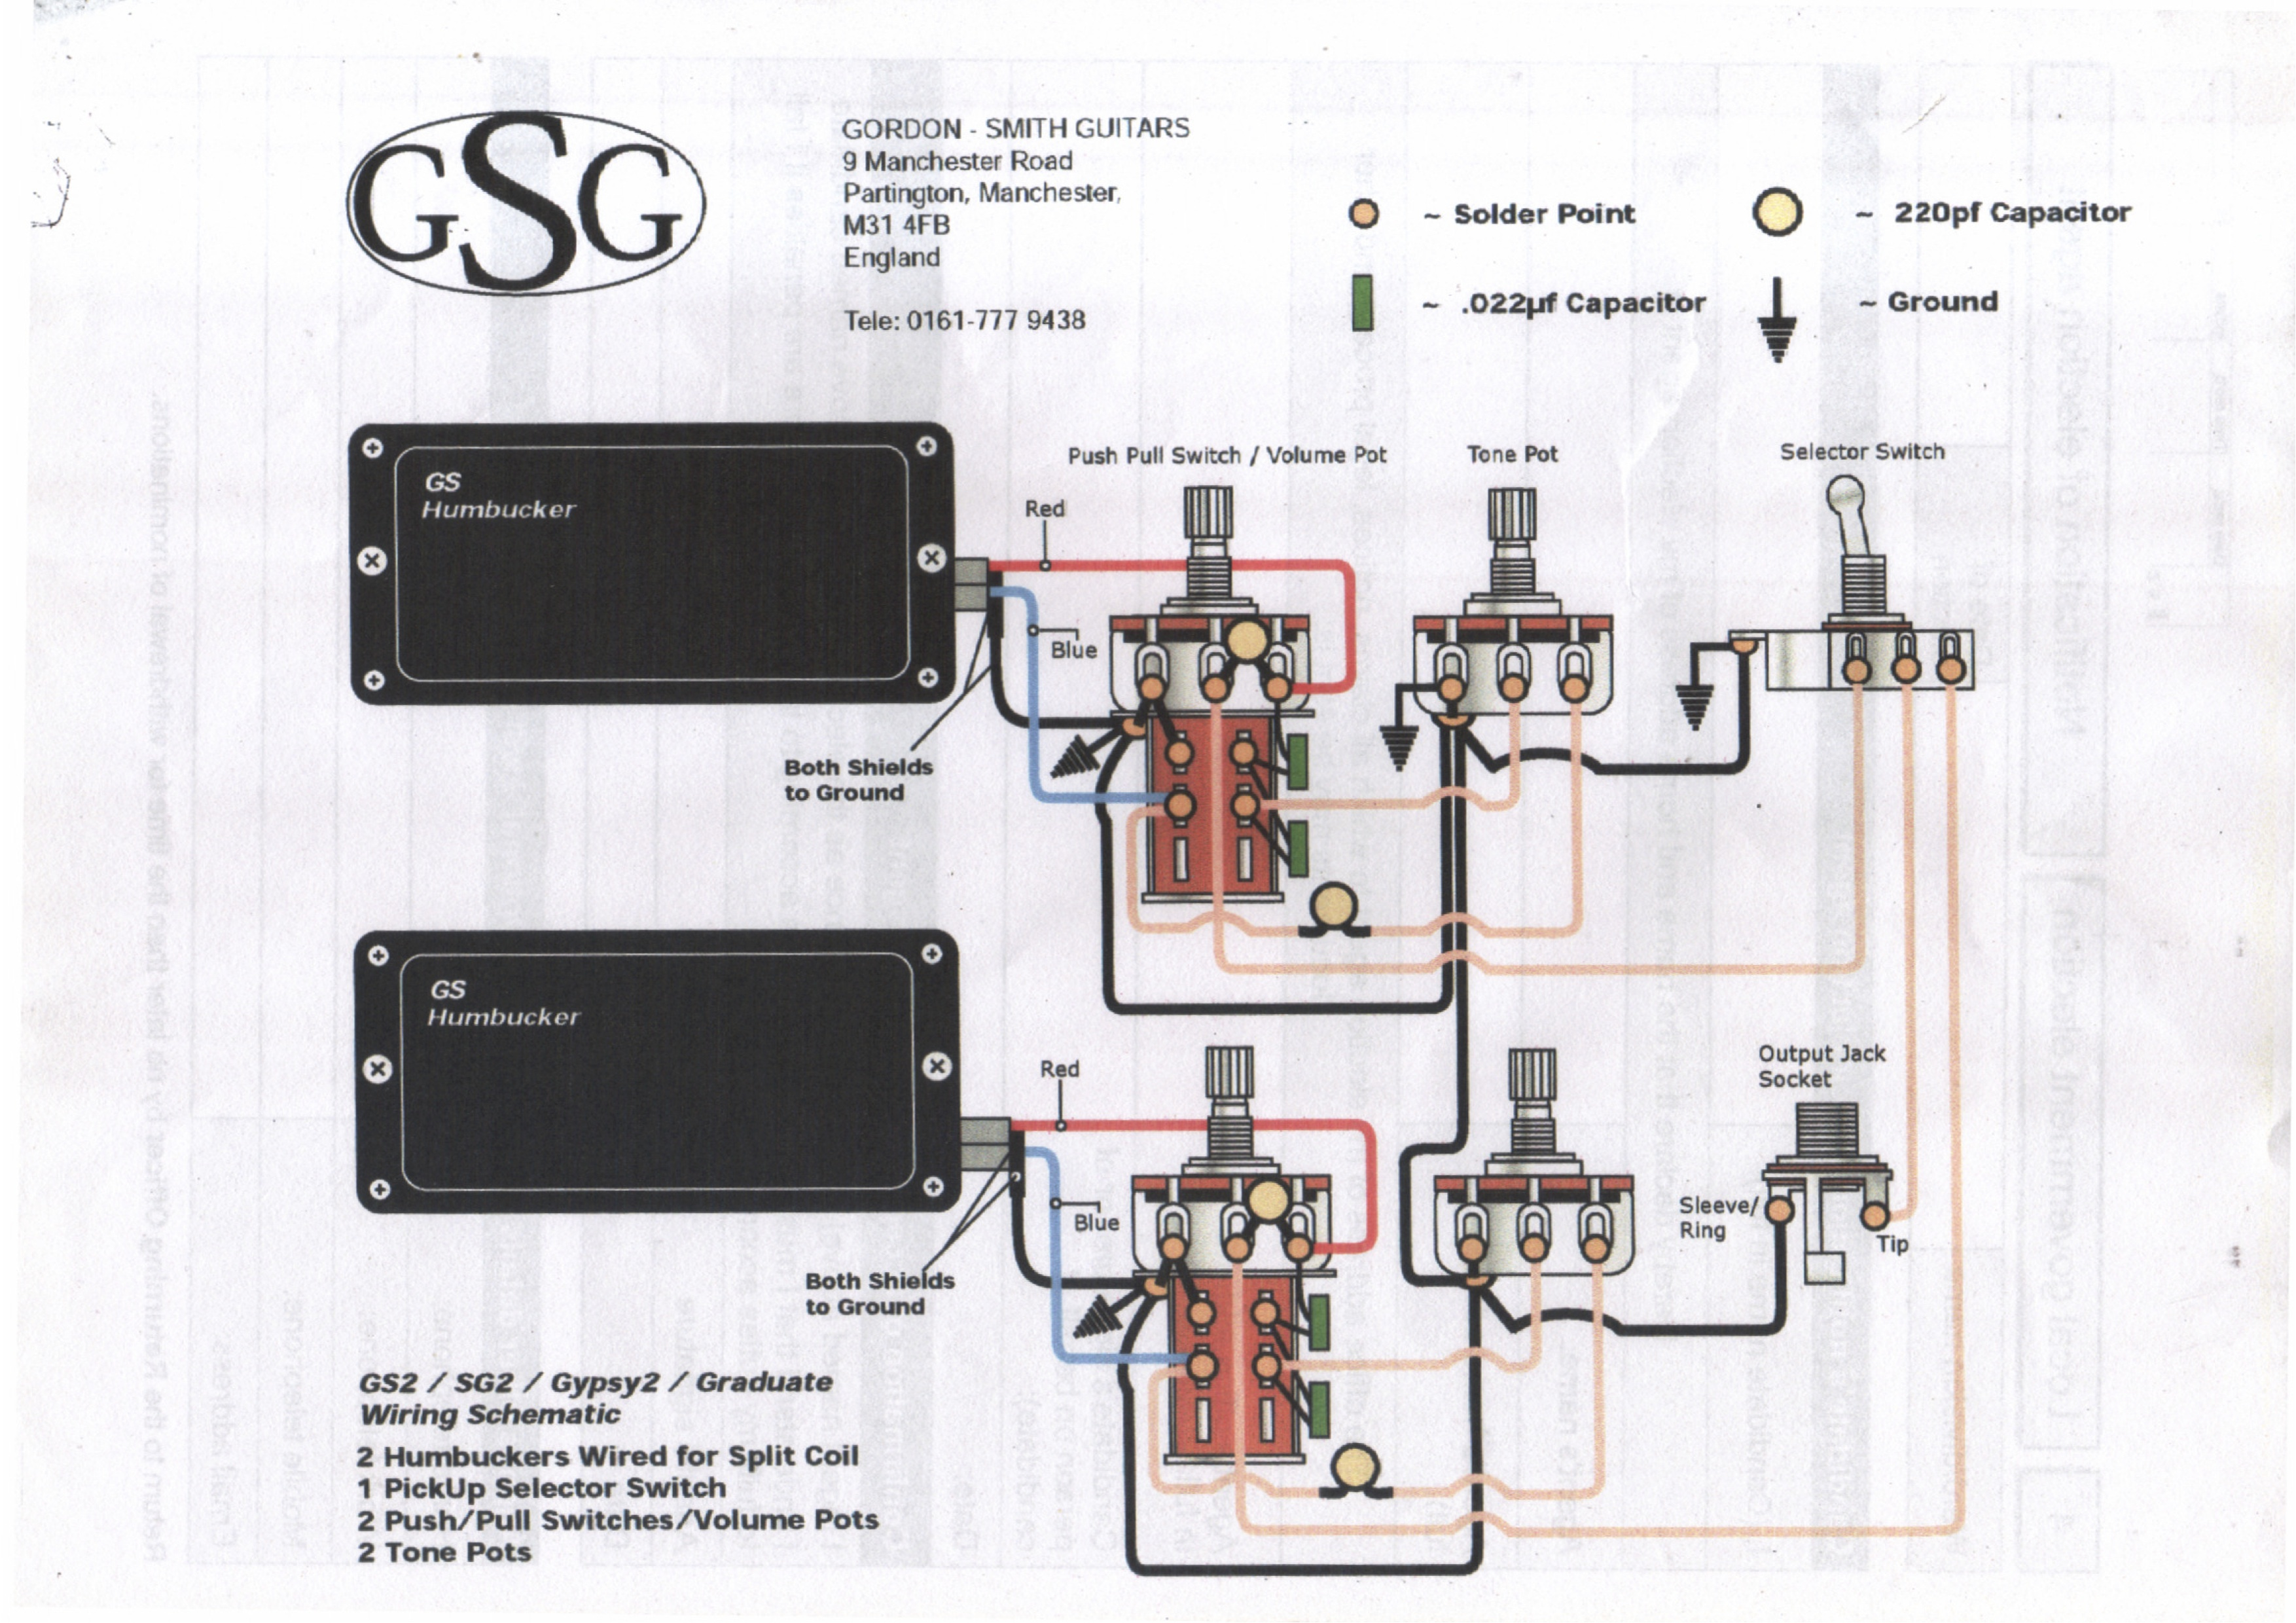 Whole Lotta Humbucker Wiring Diagram Schemes 2 Diagrams For Humbuckers With Coil Splits Marshallforum Com Jimmy Page